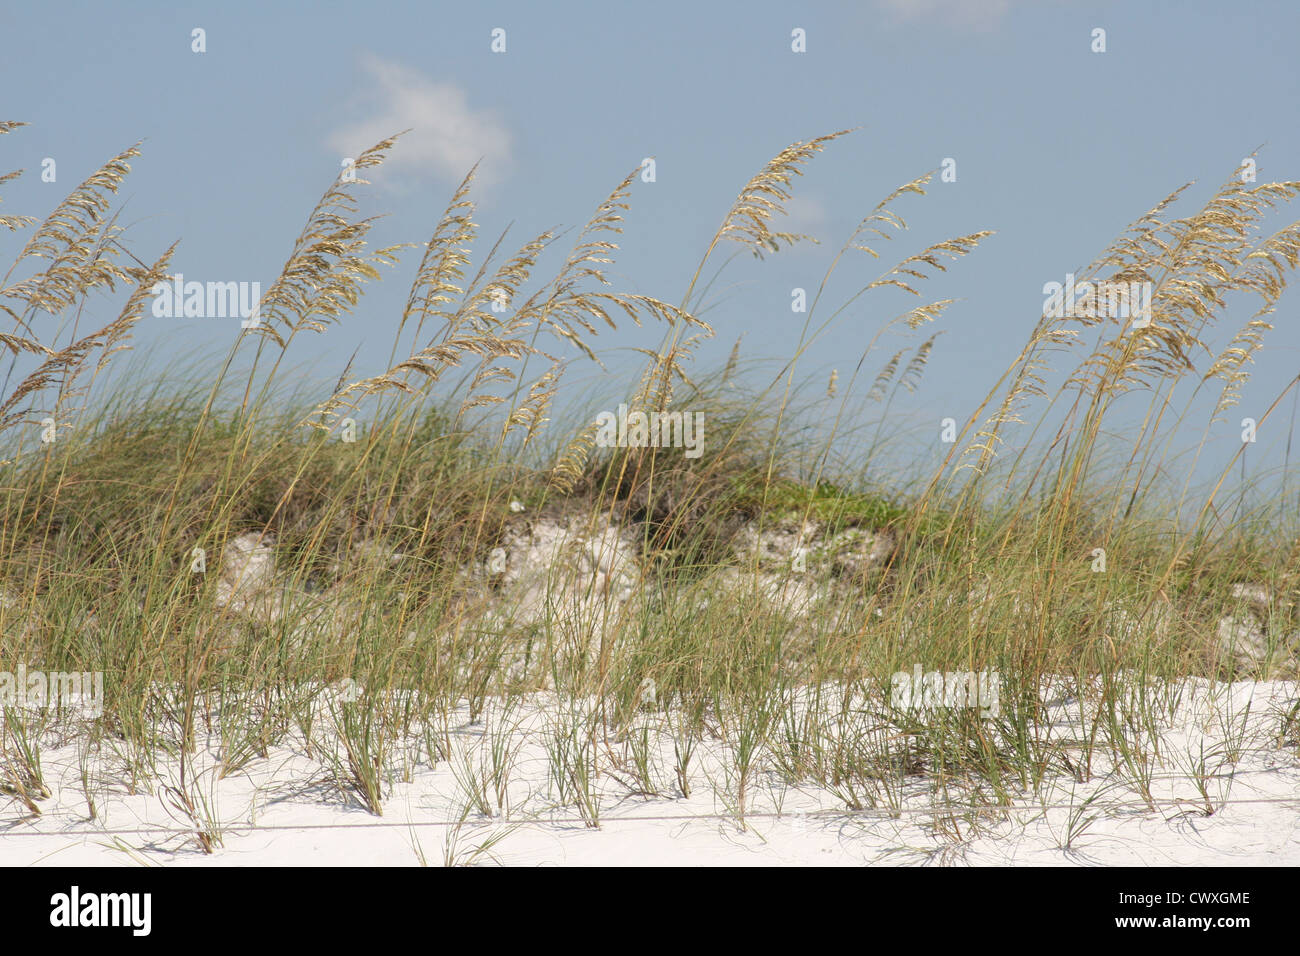 Beach Sand Dunes And Tall Grass Reeds Stock Photo Royalty